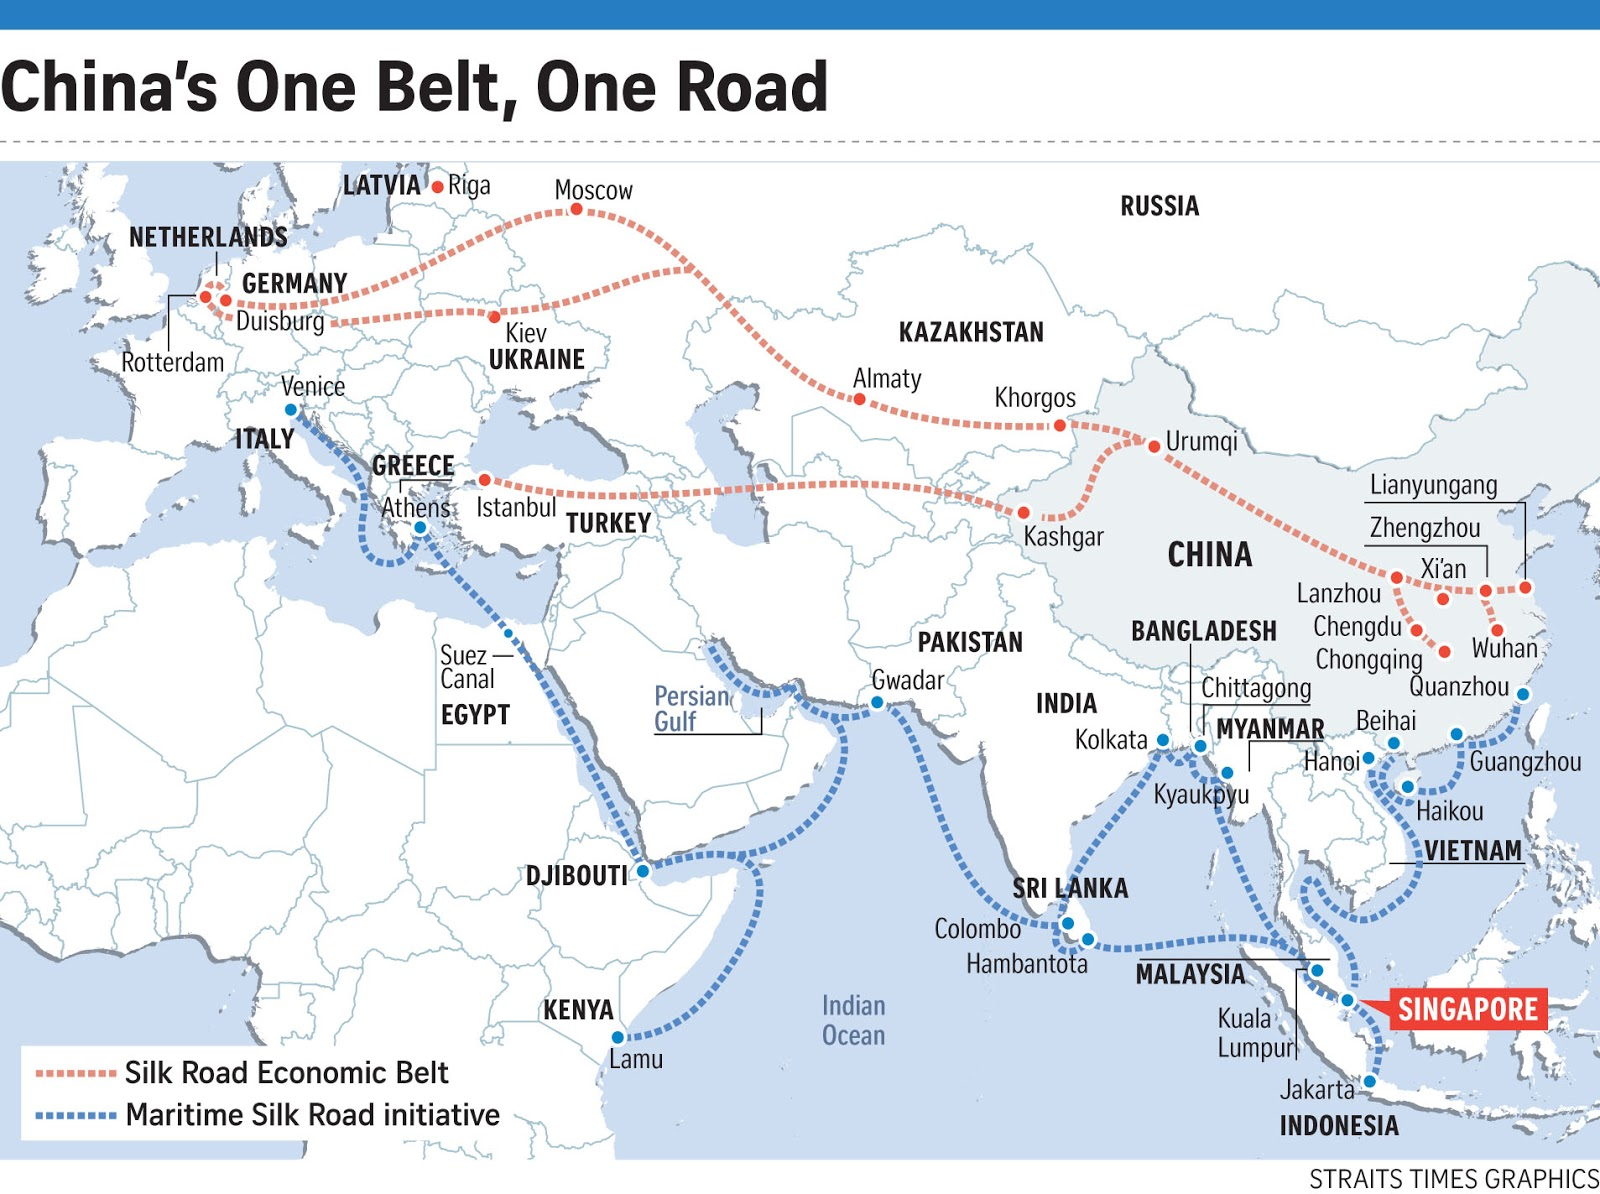 Bildergebnis für on belt one road